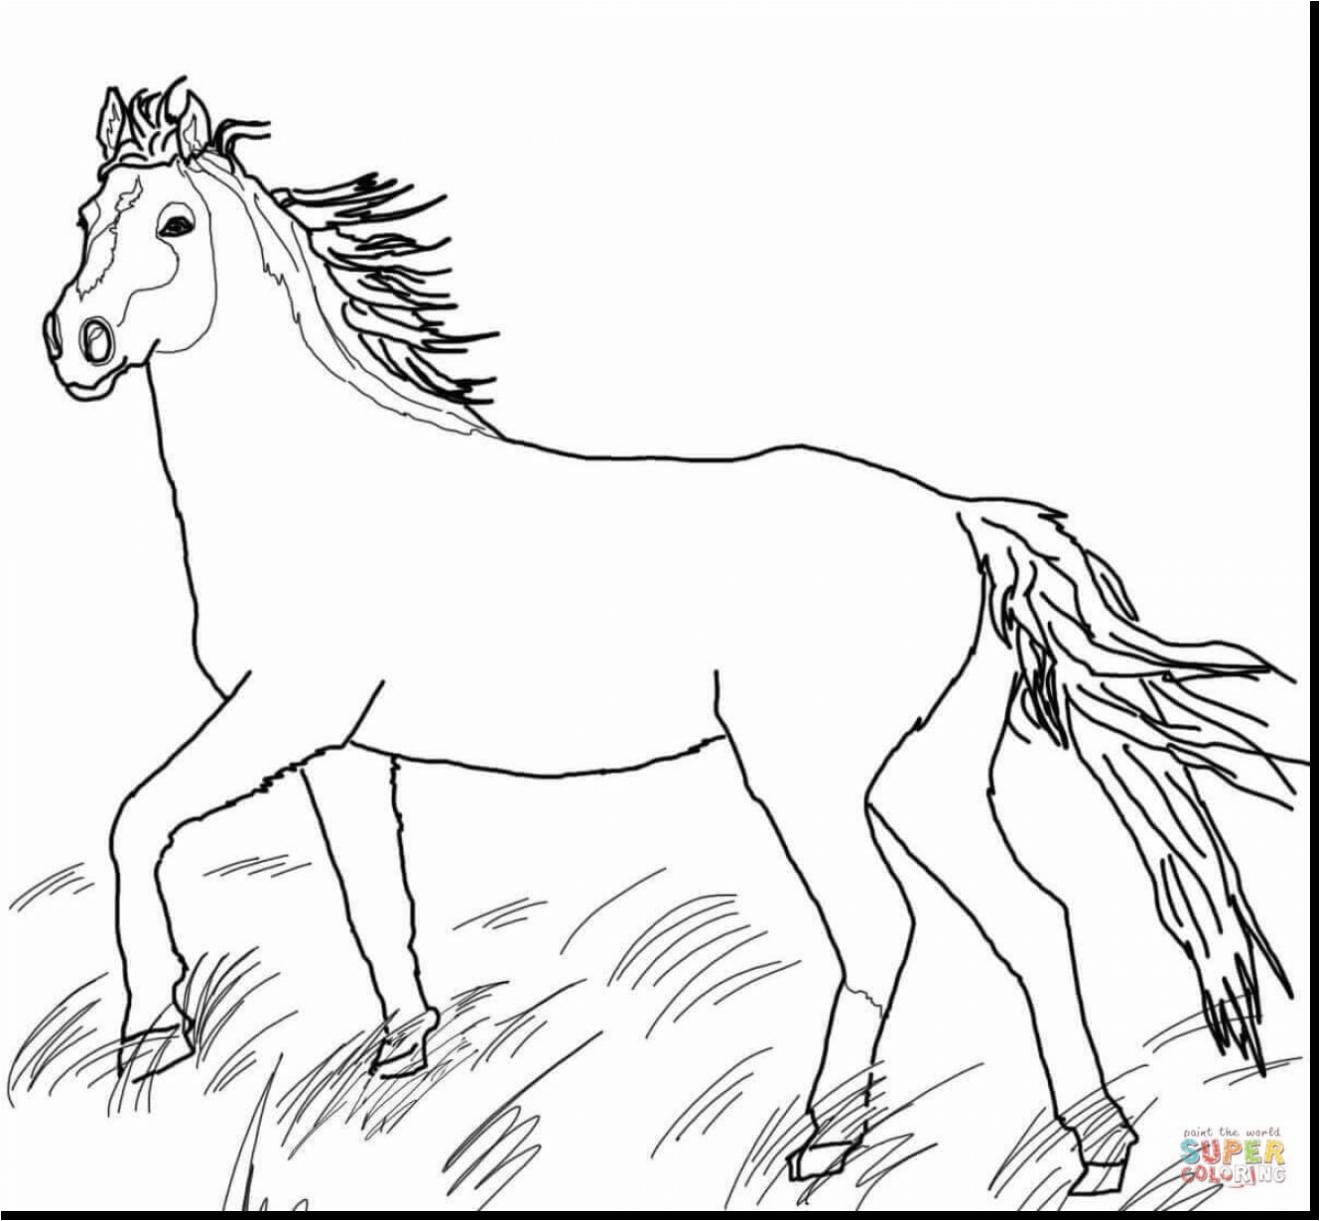 Girl Riding Horse Coloring Pages At Getcolorings